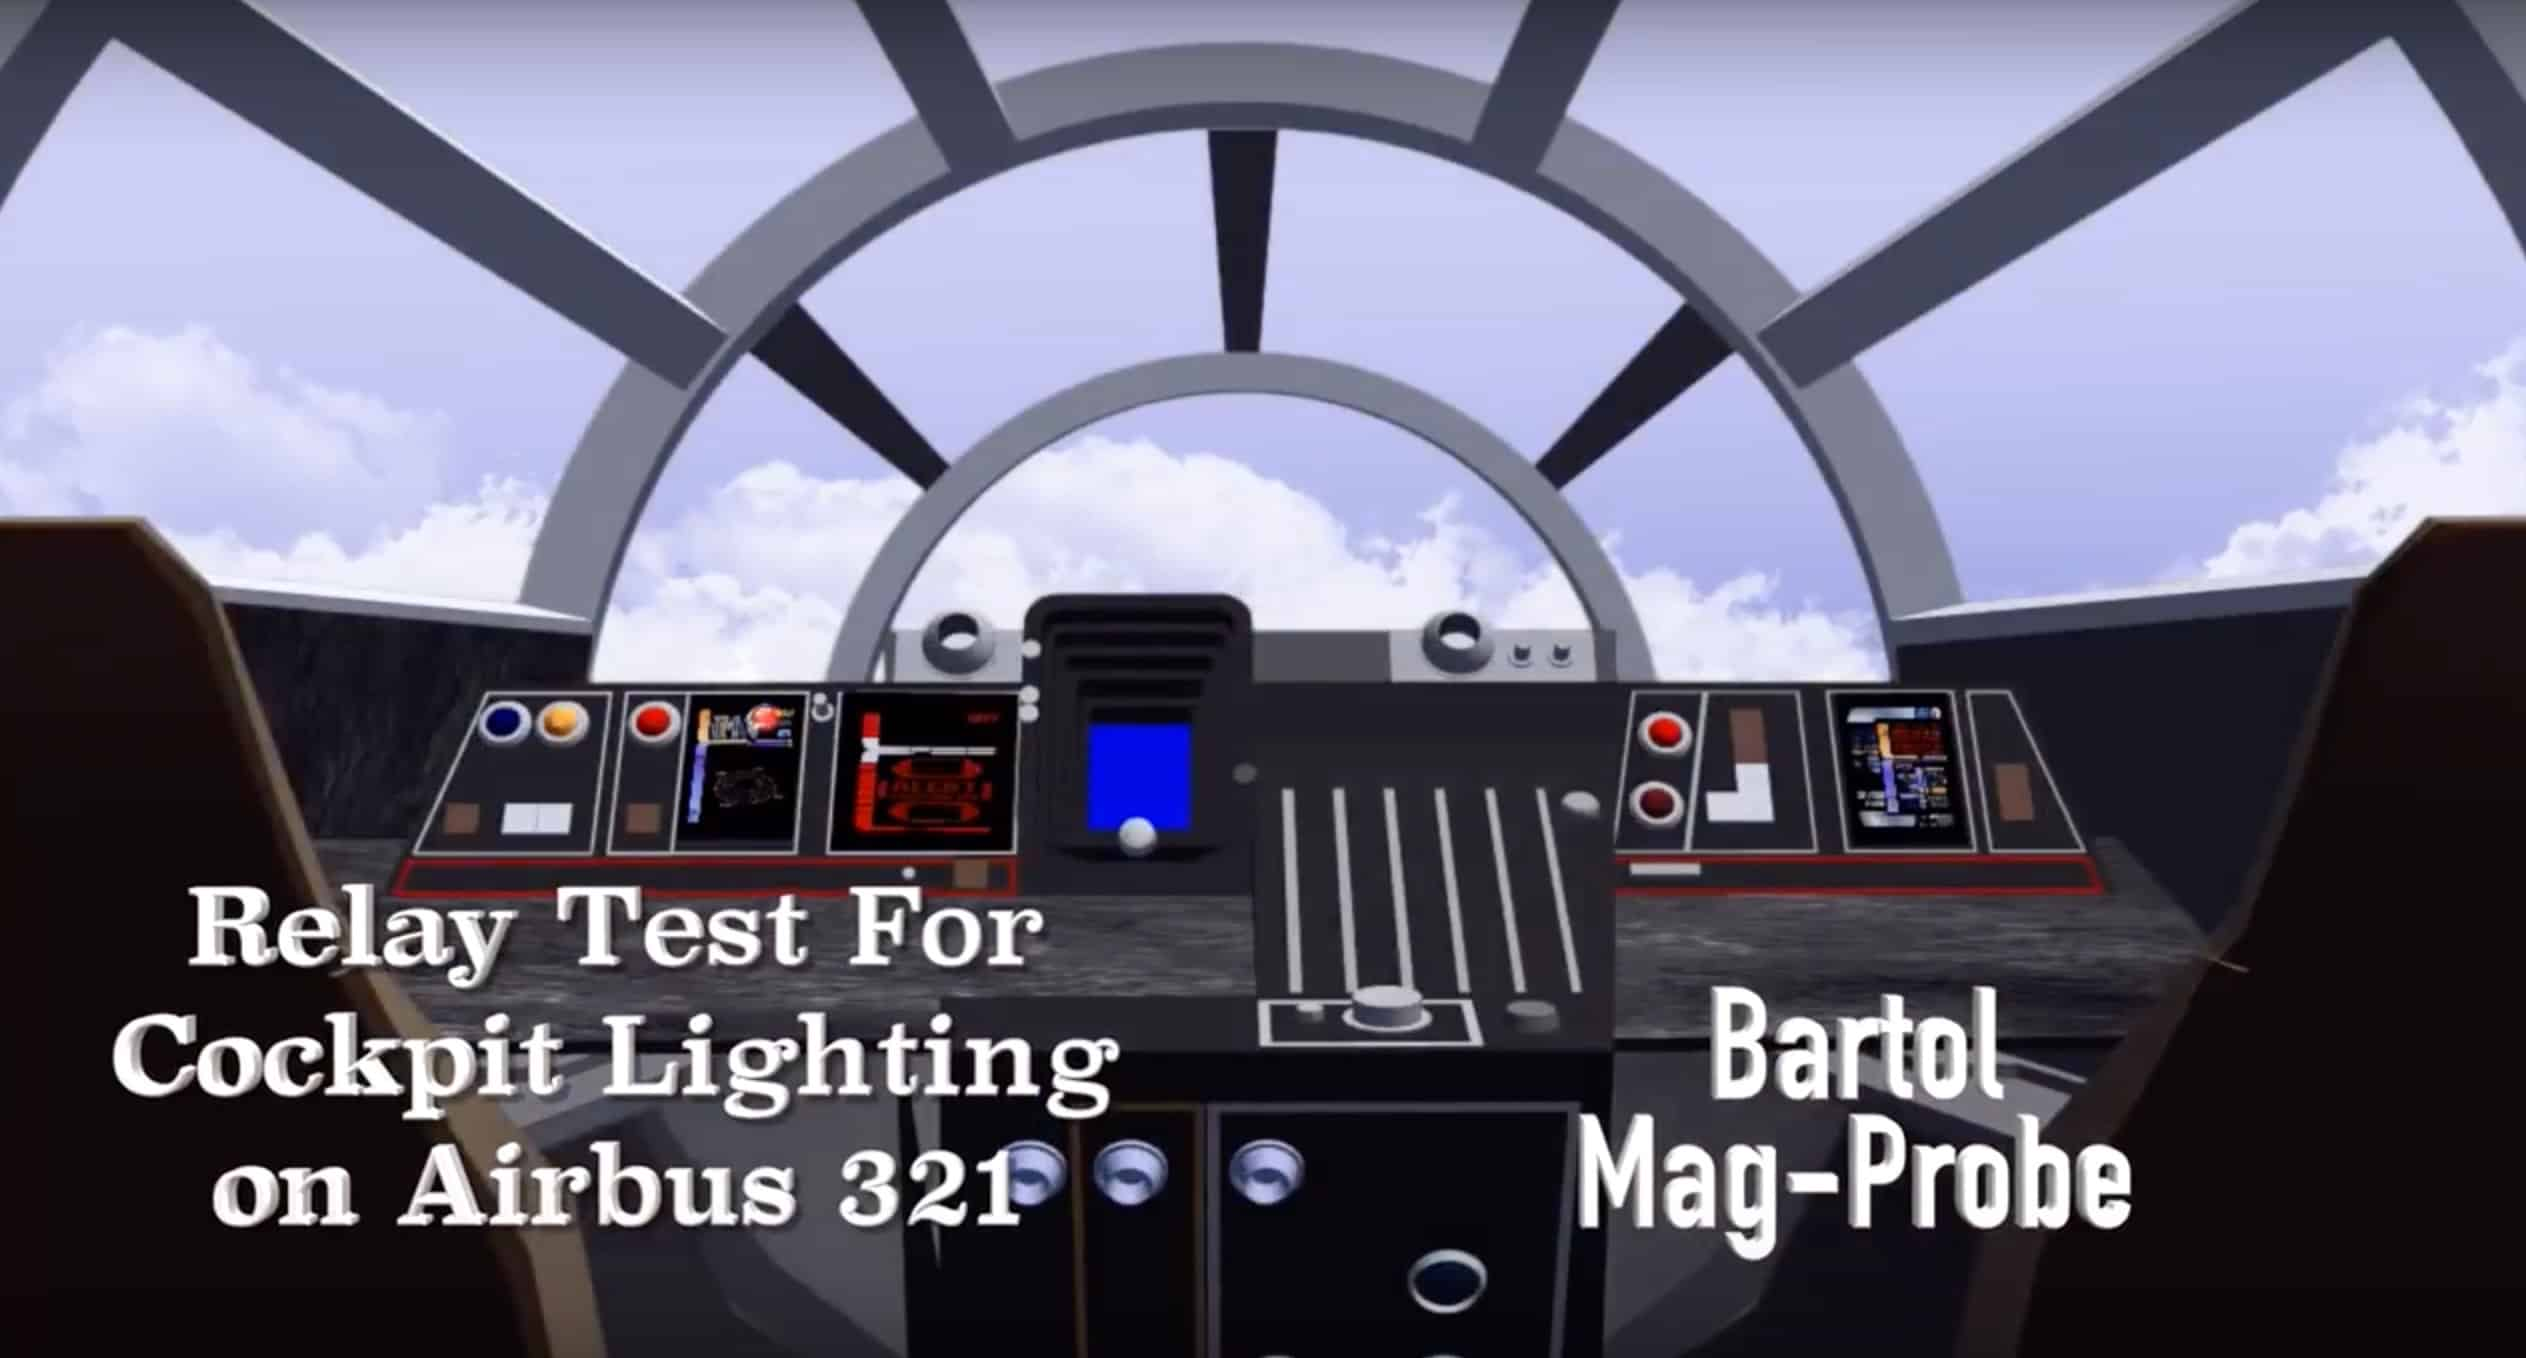 Relay Test For Cockpit Lighting On Airbus - Vehicle relay testing